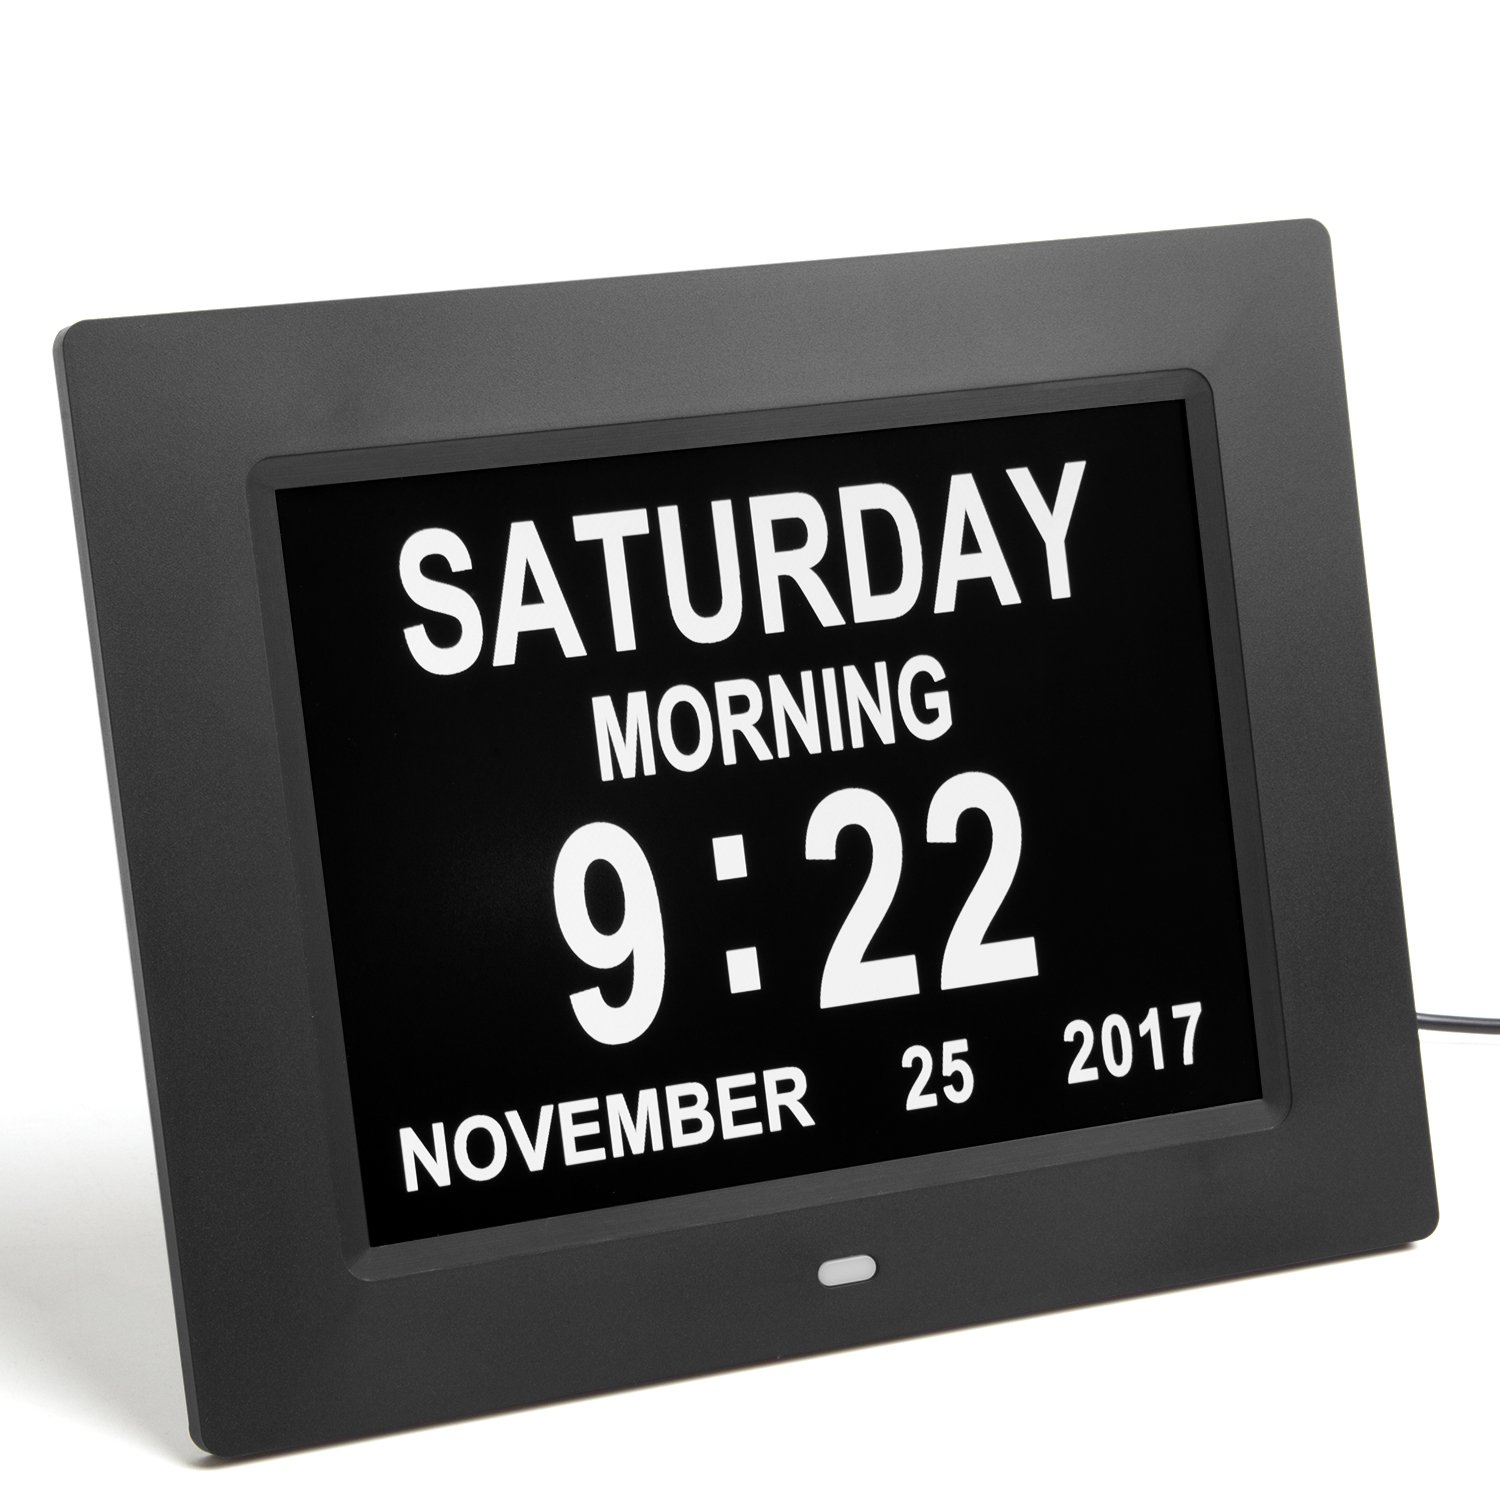 GeekDigg Desk Clock, Extra Large Impaired Vision Digital Calendar Day Clock with 3 Reminder & 5 Alarm Options (Black)